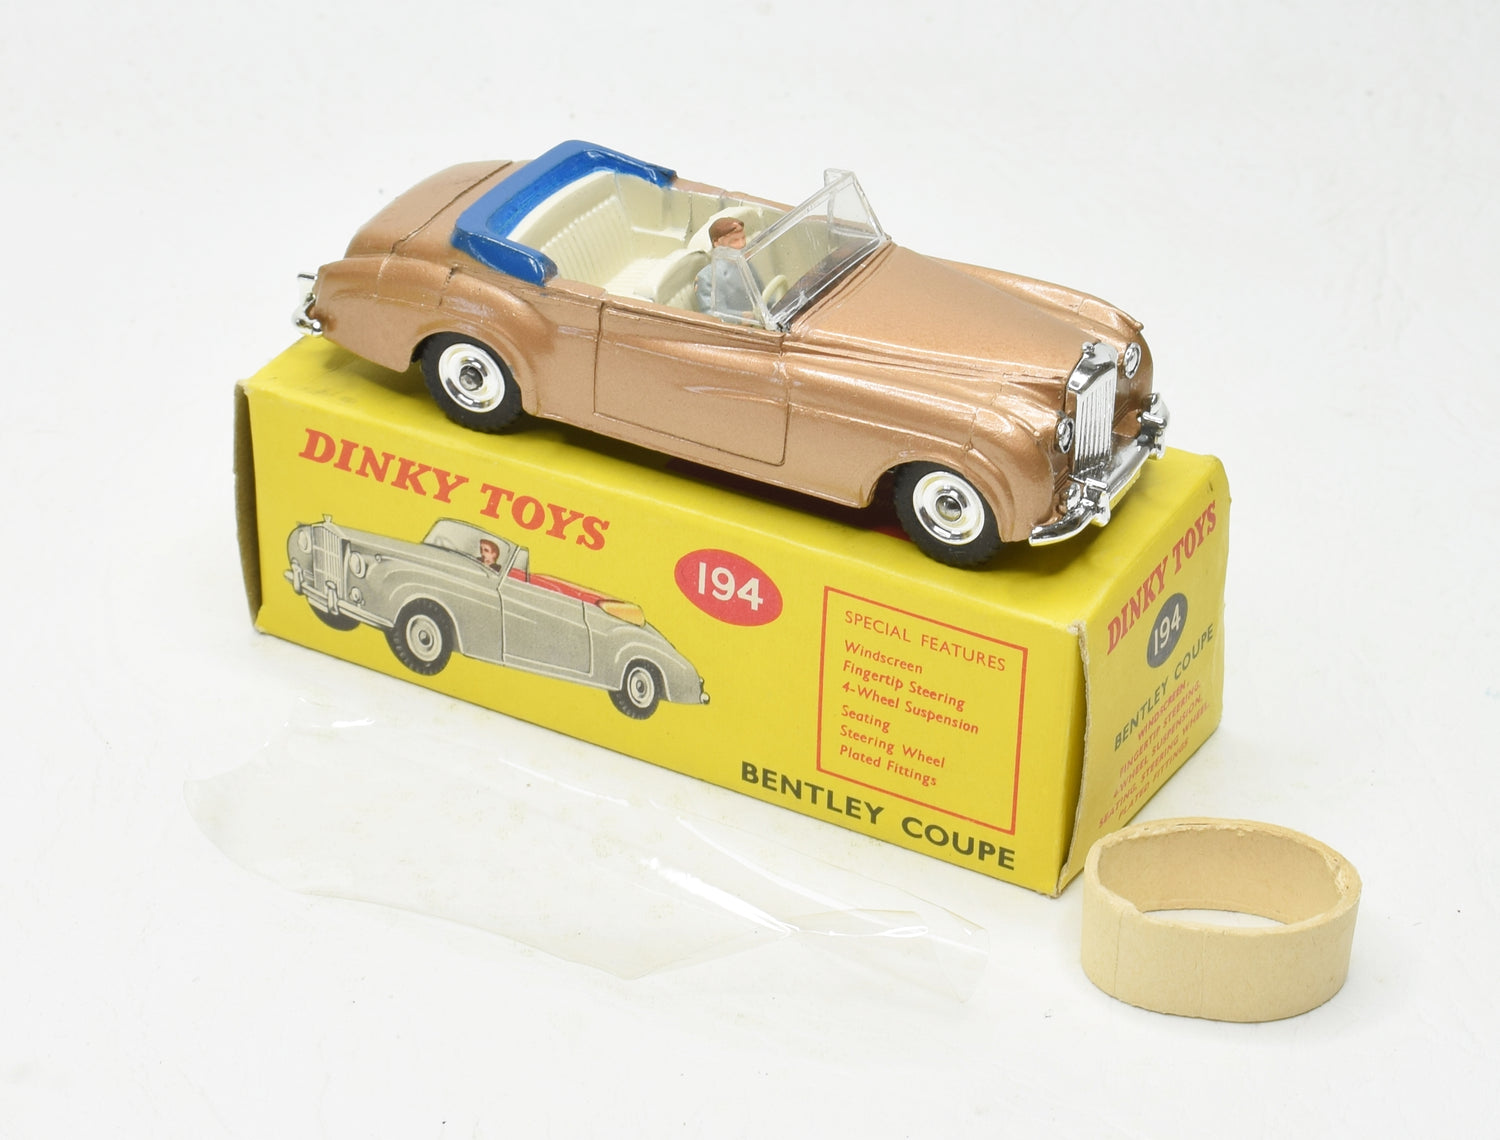 Dinky Toys 194 Bentley Coupe Virtually Mint/Boxed